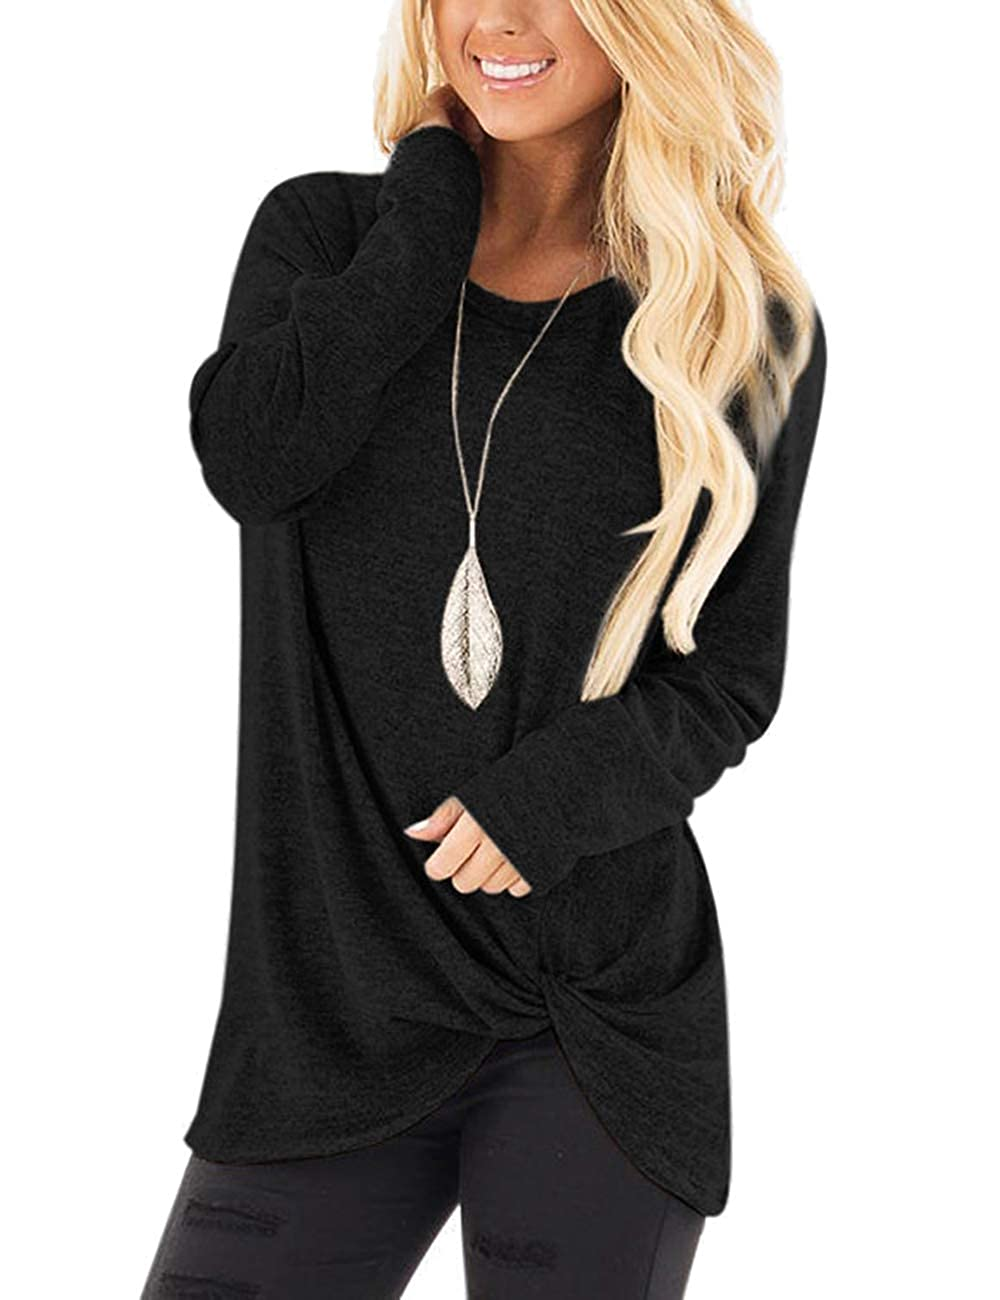 Lrud Womens Crossed Front Long Sleeve Tops Casual Knotted Sweatshirt T-Shirts